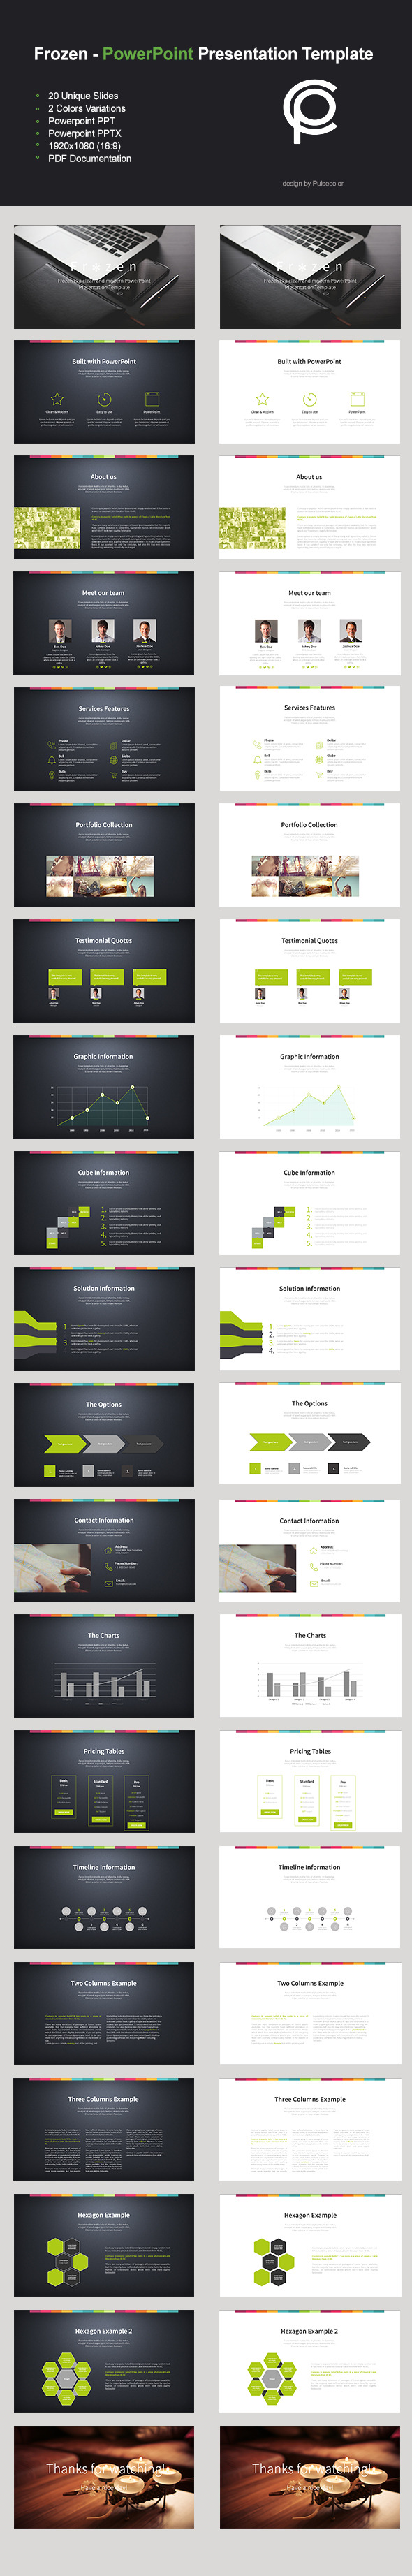 GraphicRiver Frozen PowerPoint Presentation Template 10243333